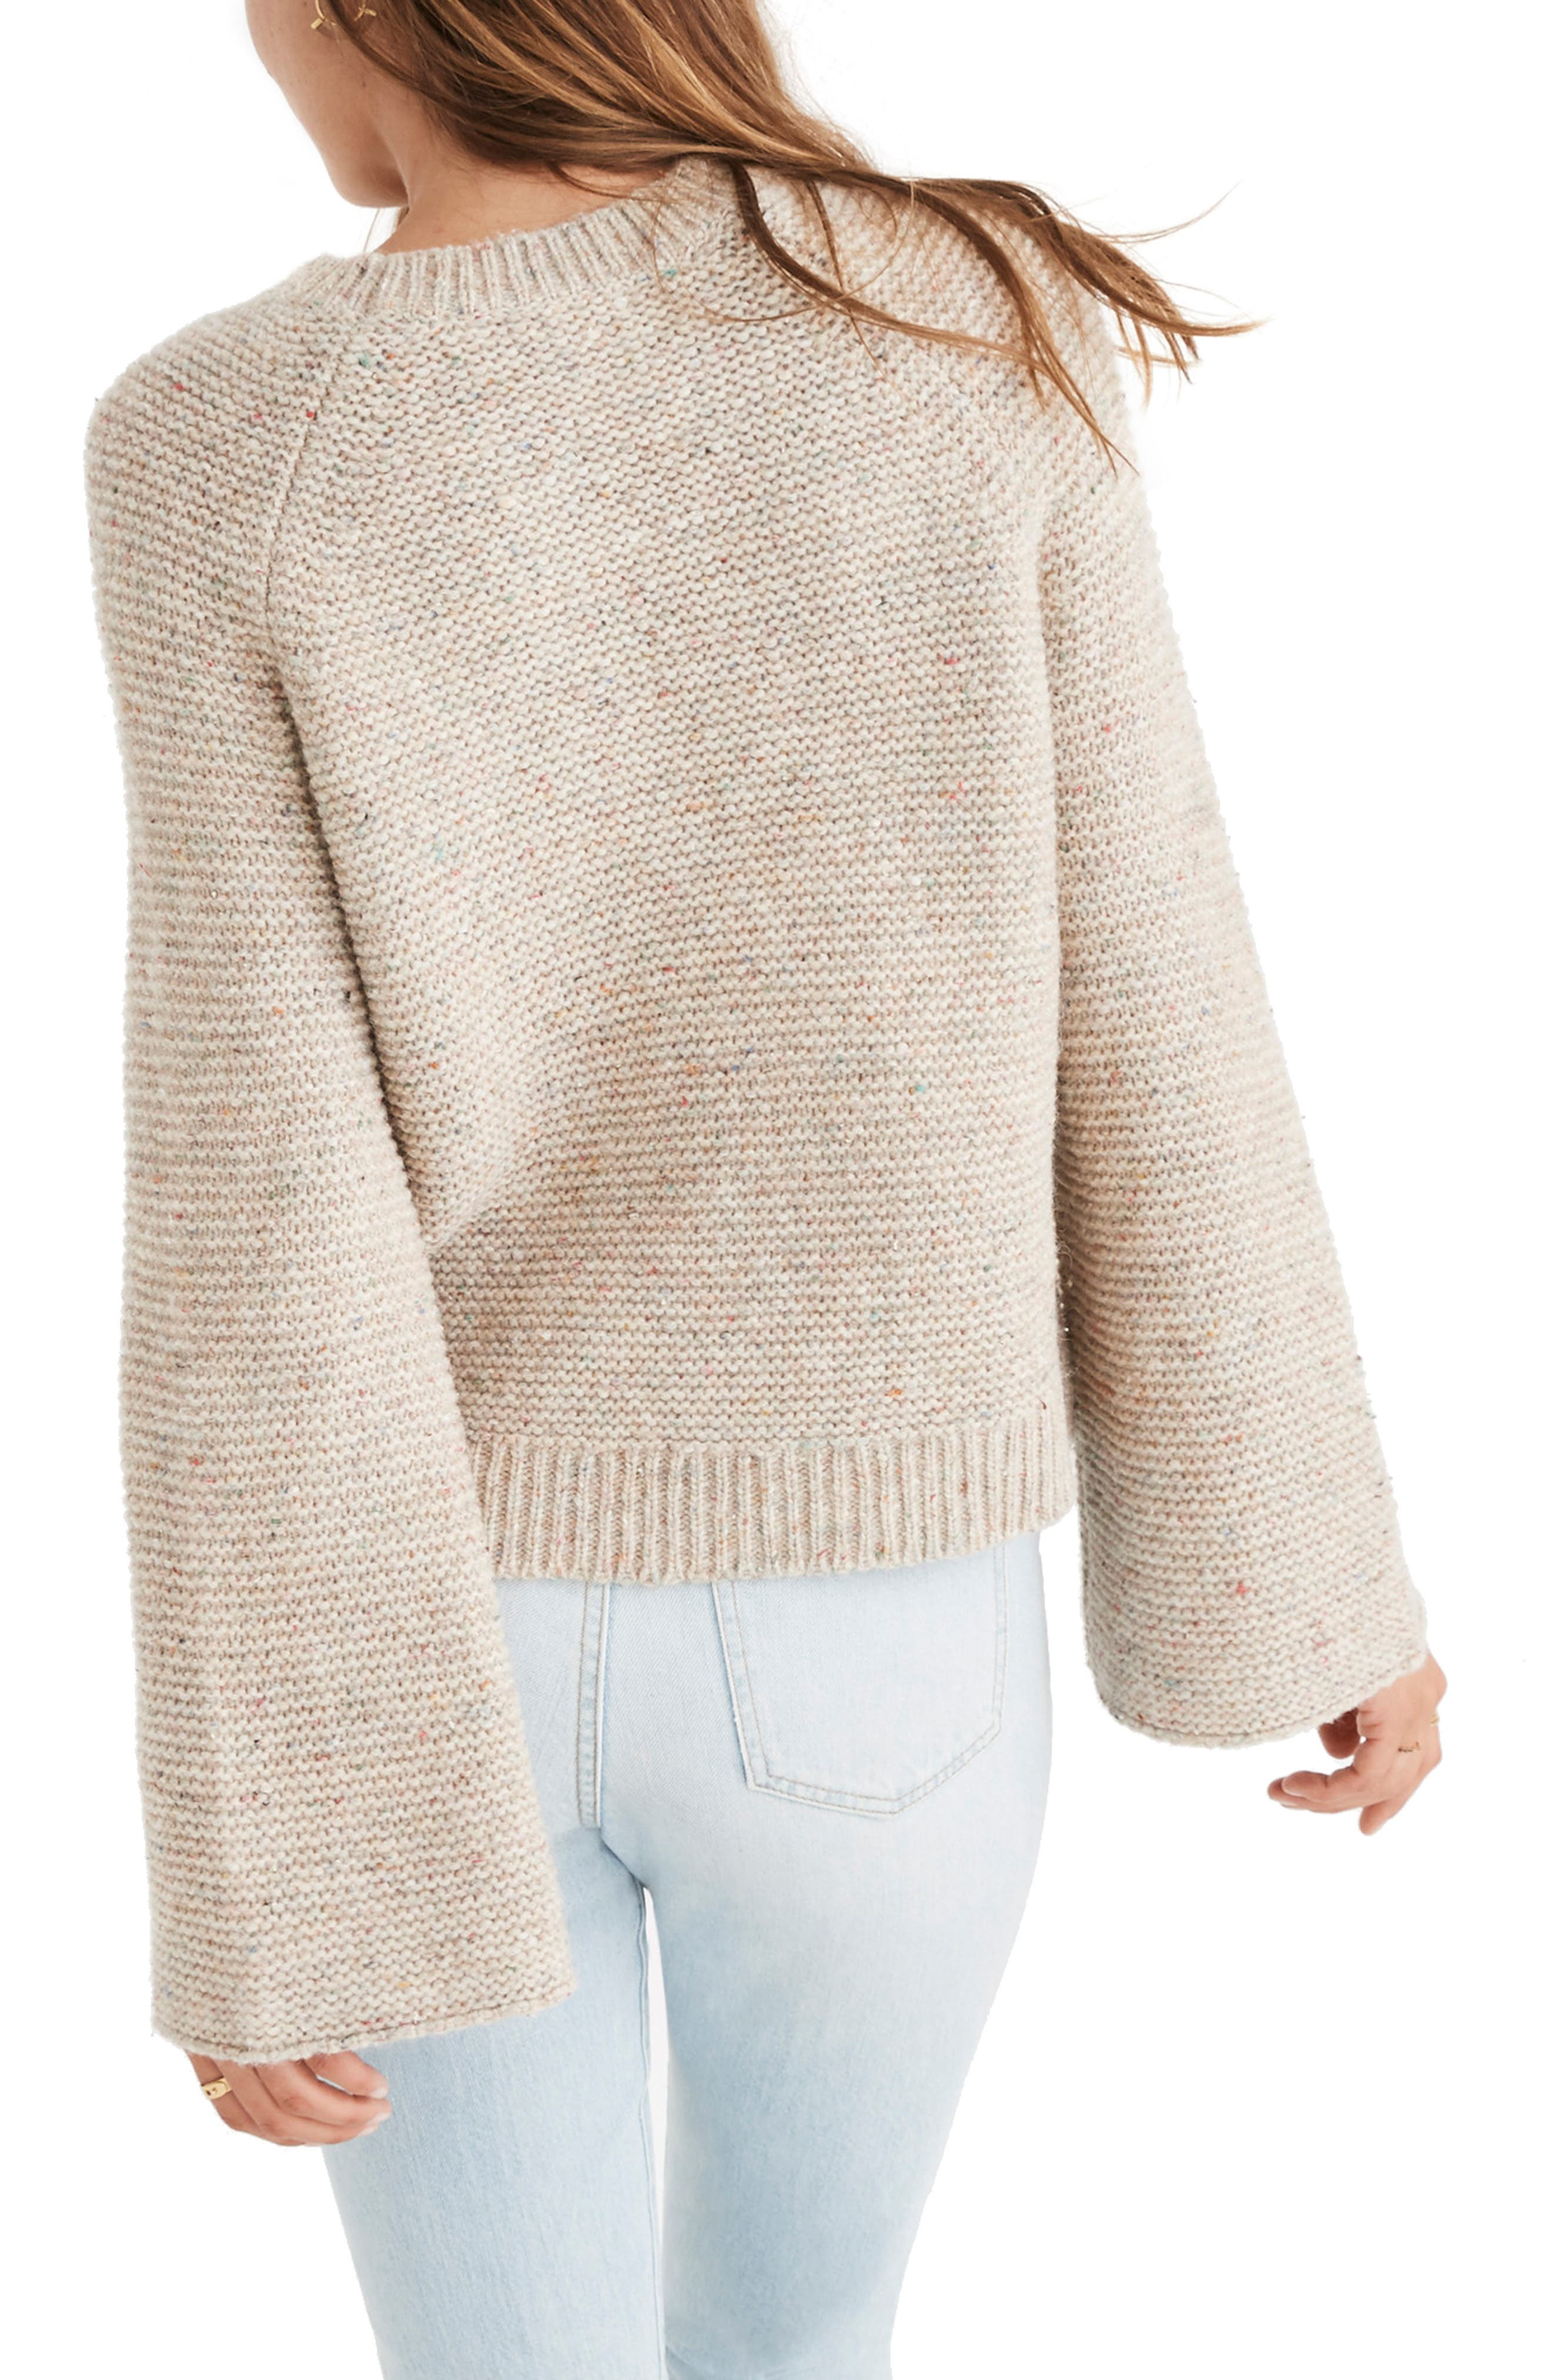 MADEWELL,                             Flecked Wide Sleeve Sweater,                             Alternate thumbnail 2, color,                             020